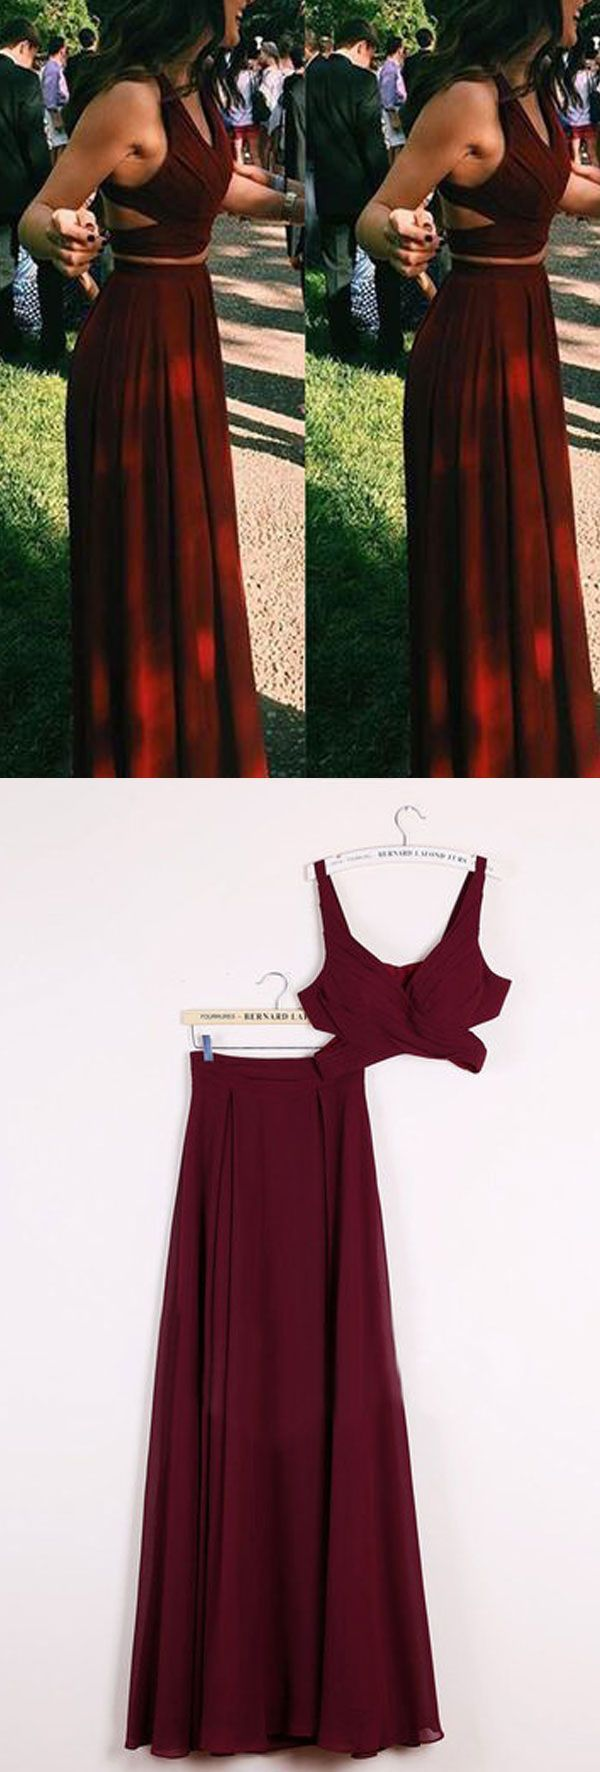 Sexy two piece prom dresses piece homecoming dresses burgundy